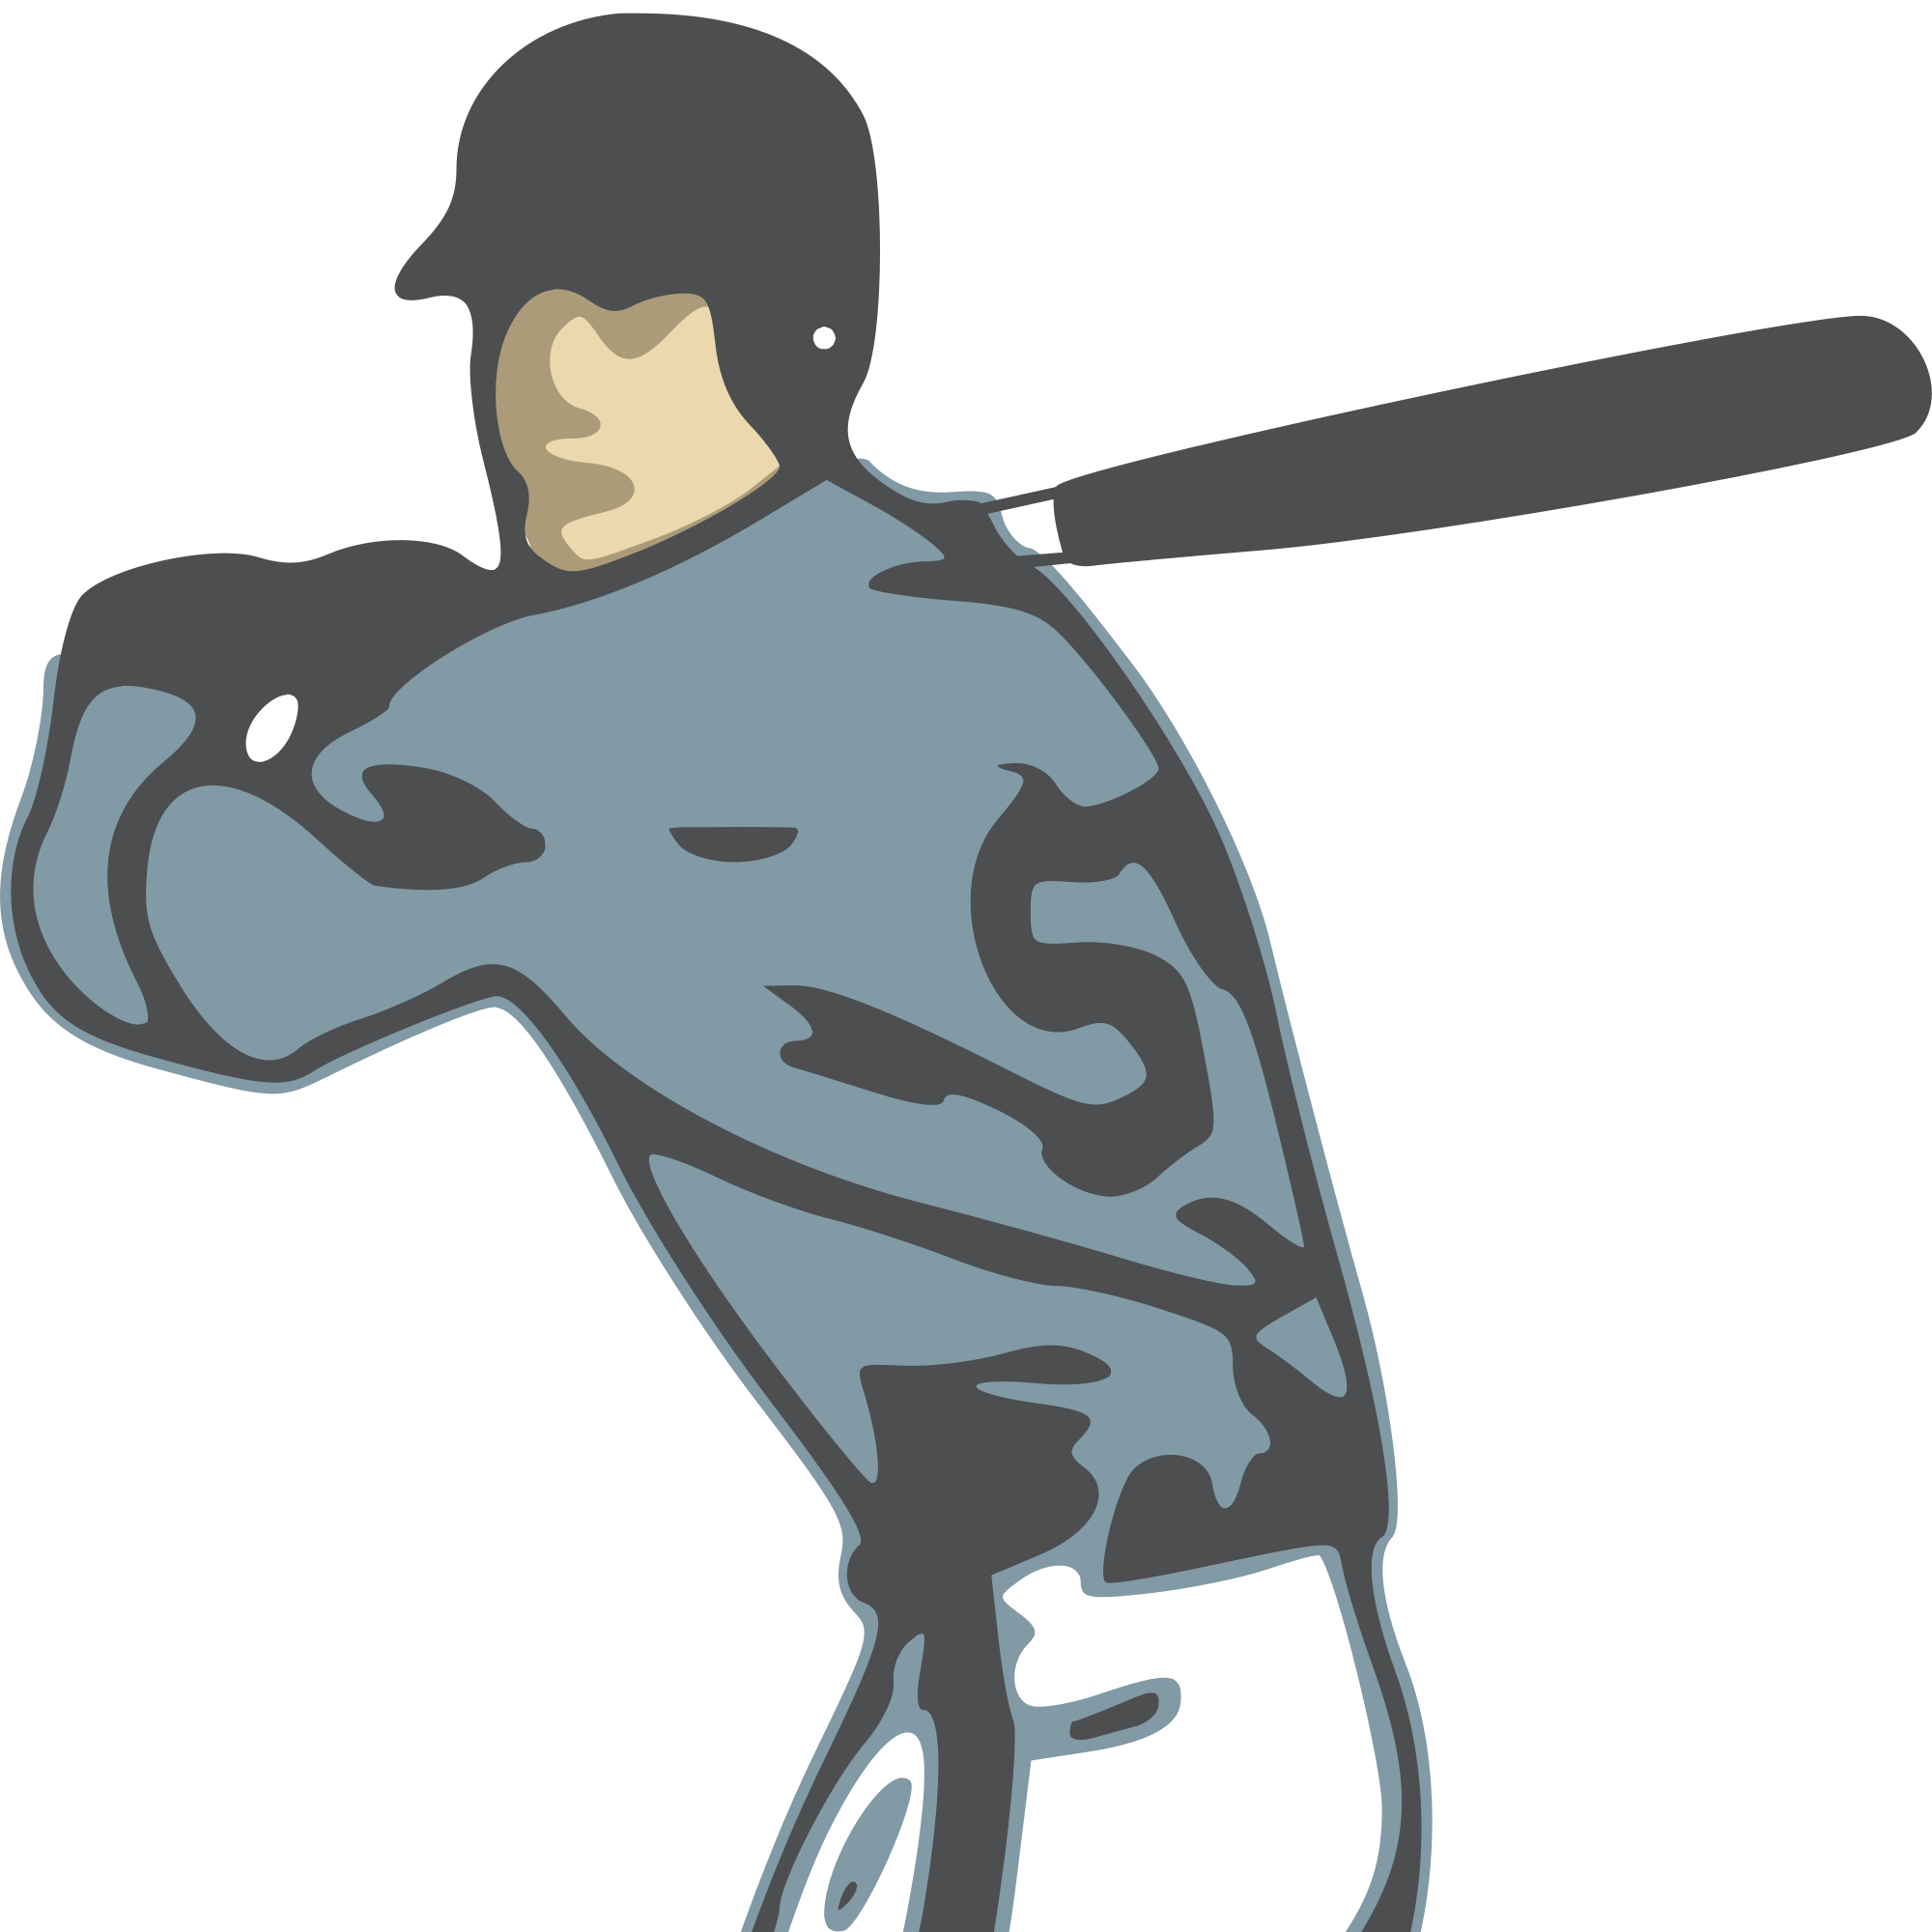 Clipart baseball bat and ball png library stock Baseball Batter Clipart at GetDrawings.com | Free for personal use ... png library stock